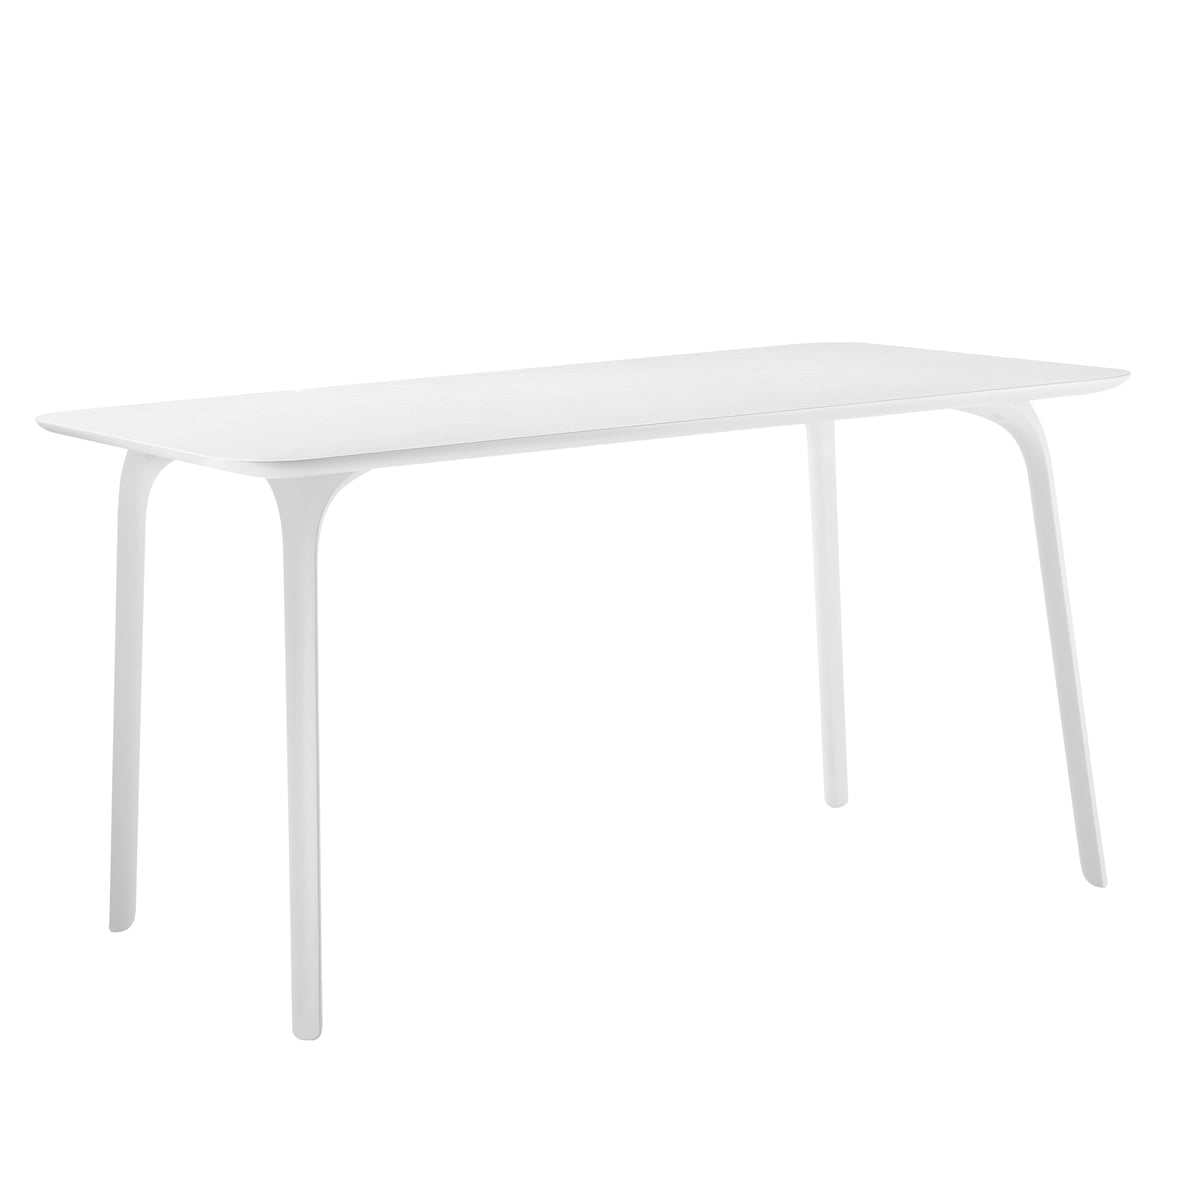 Table first by magis in the home design shop for Magis table first